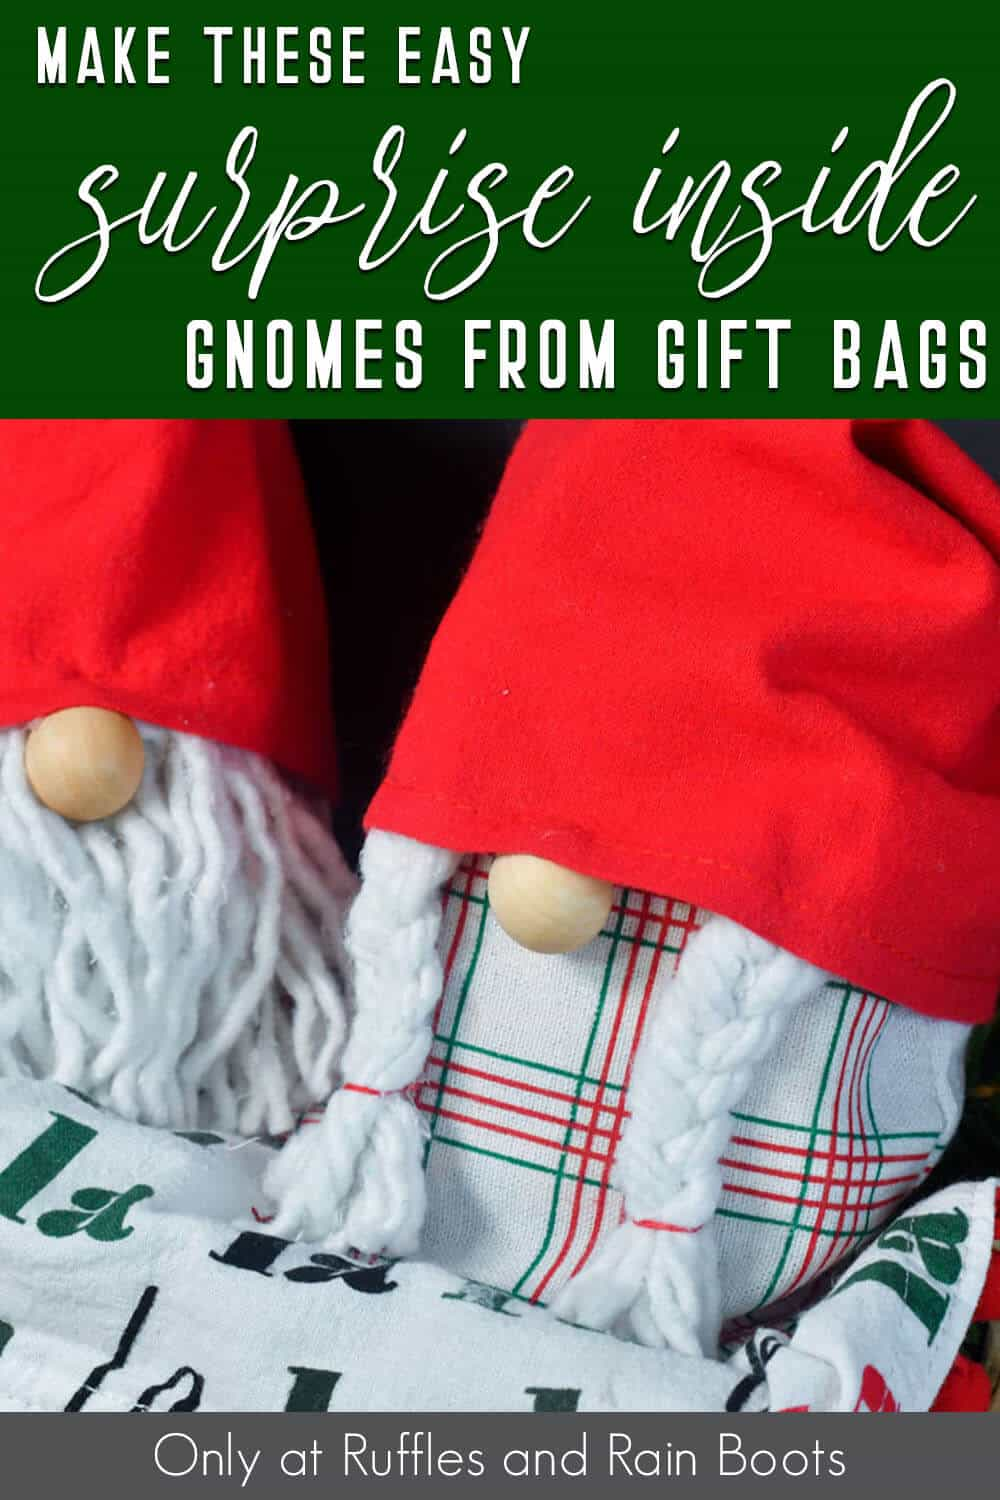 christmas gift bag gnomes with text which reads make these easy surprise inside gnomes from gift bags